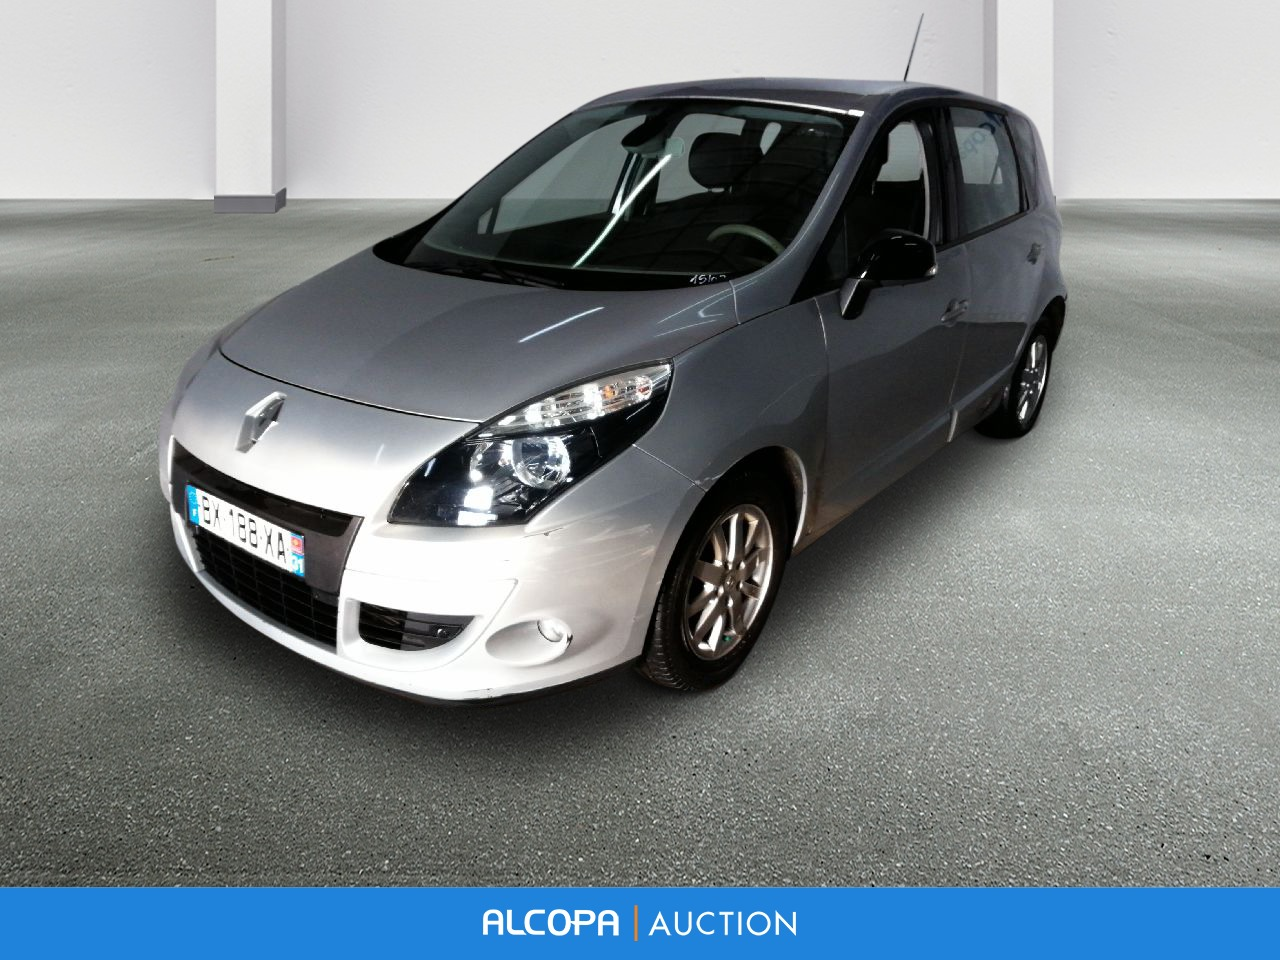 renault scenic iii scenic iii dci 130 fap energy eco2 exception tours alcopa auction. Black Bedroom Furniture Sets. Home Design Ideas